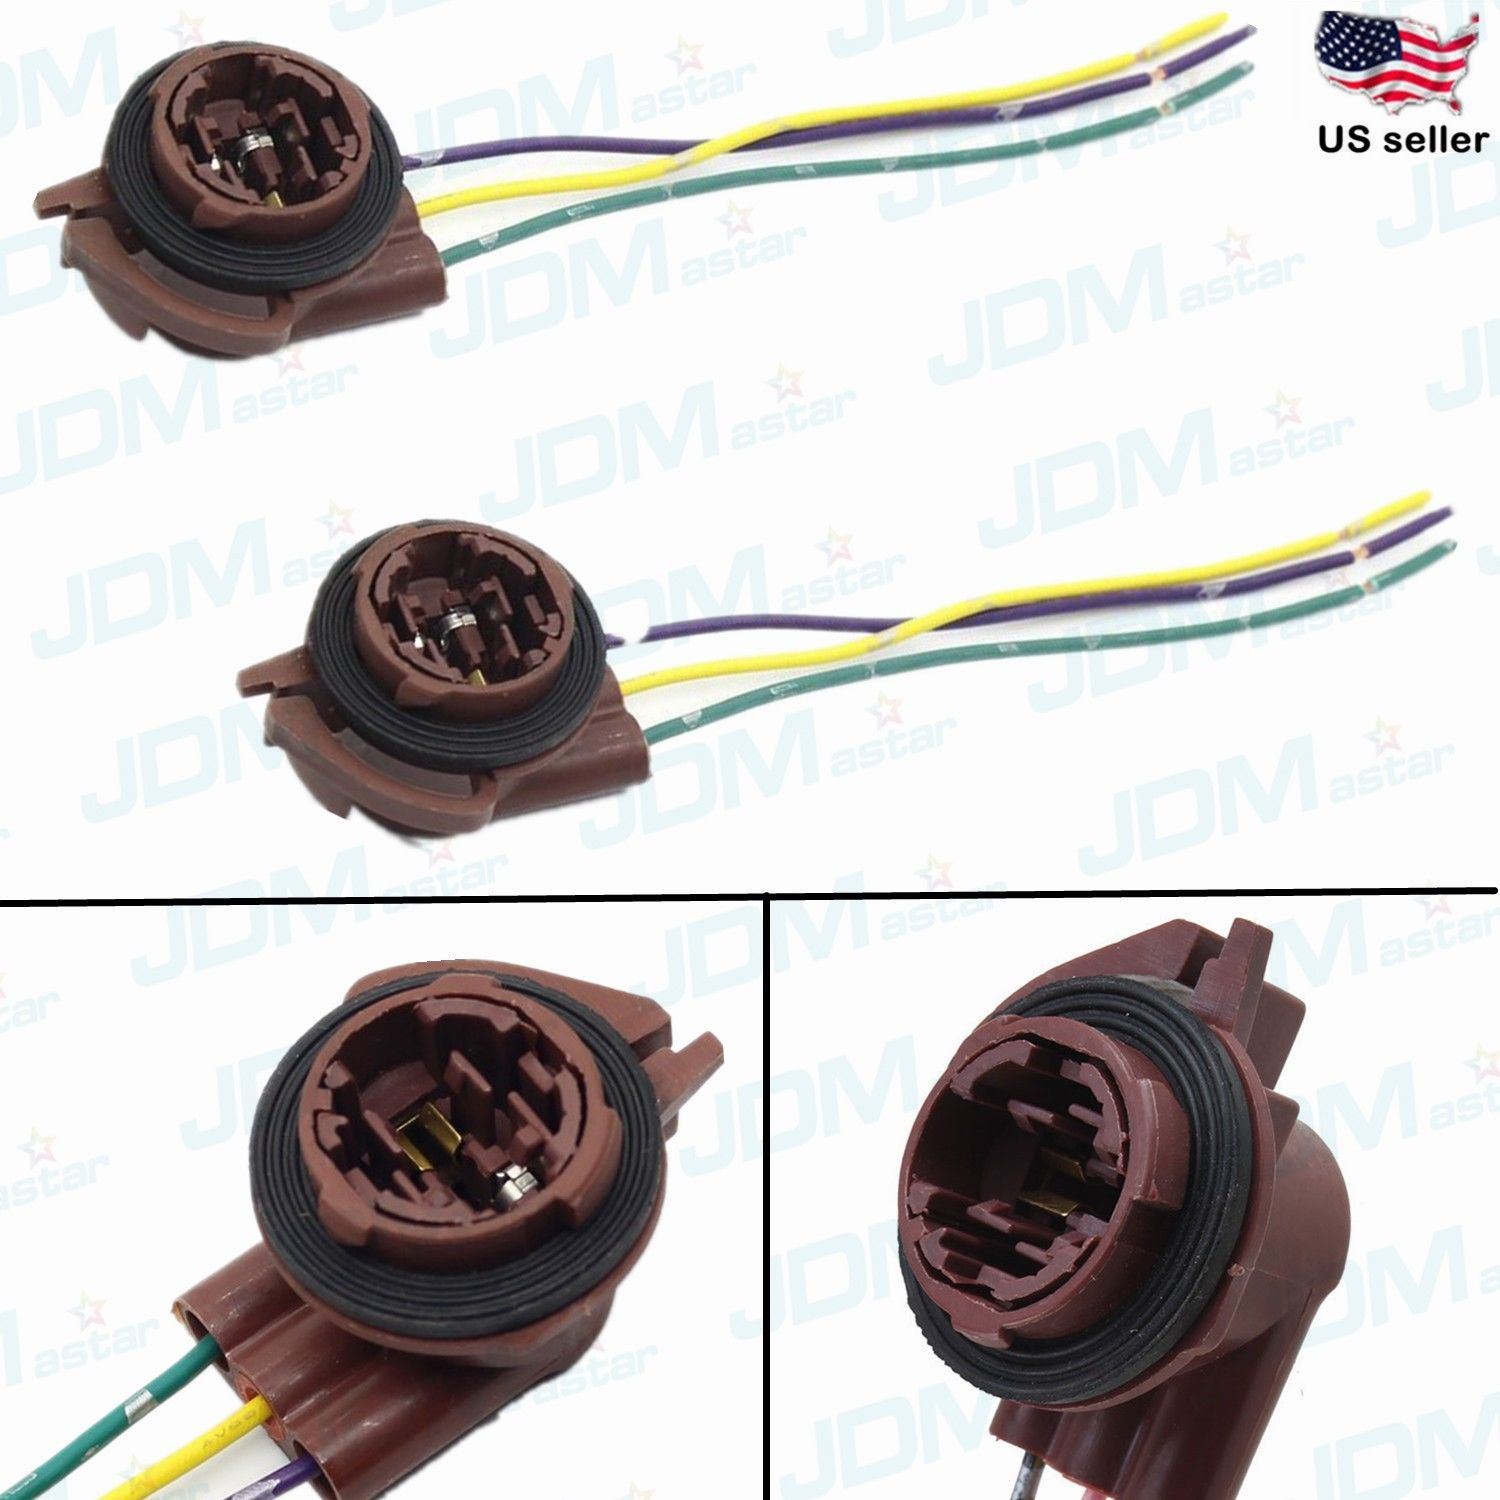 3157A socket harness 1?versionId=luZVsWTmtBB0K6WrOp6TCHwbqxcaKjlO jdm astar 3157 4157na bulb socket turn signal light harness wire 1986 Toyota 4Runner Wiring Harness at pacquiaovsvargaslive.co